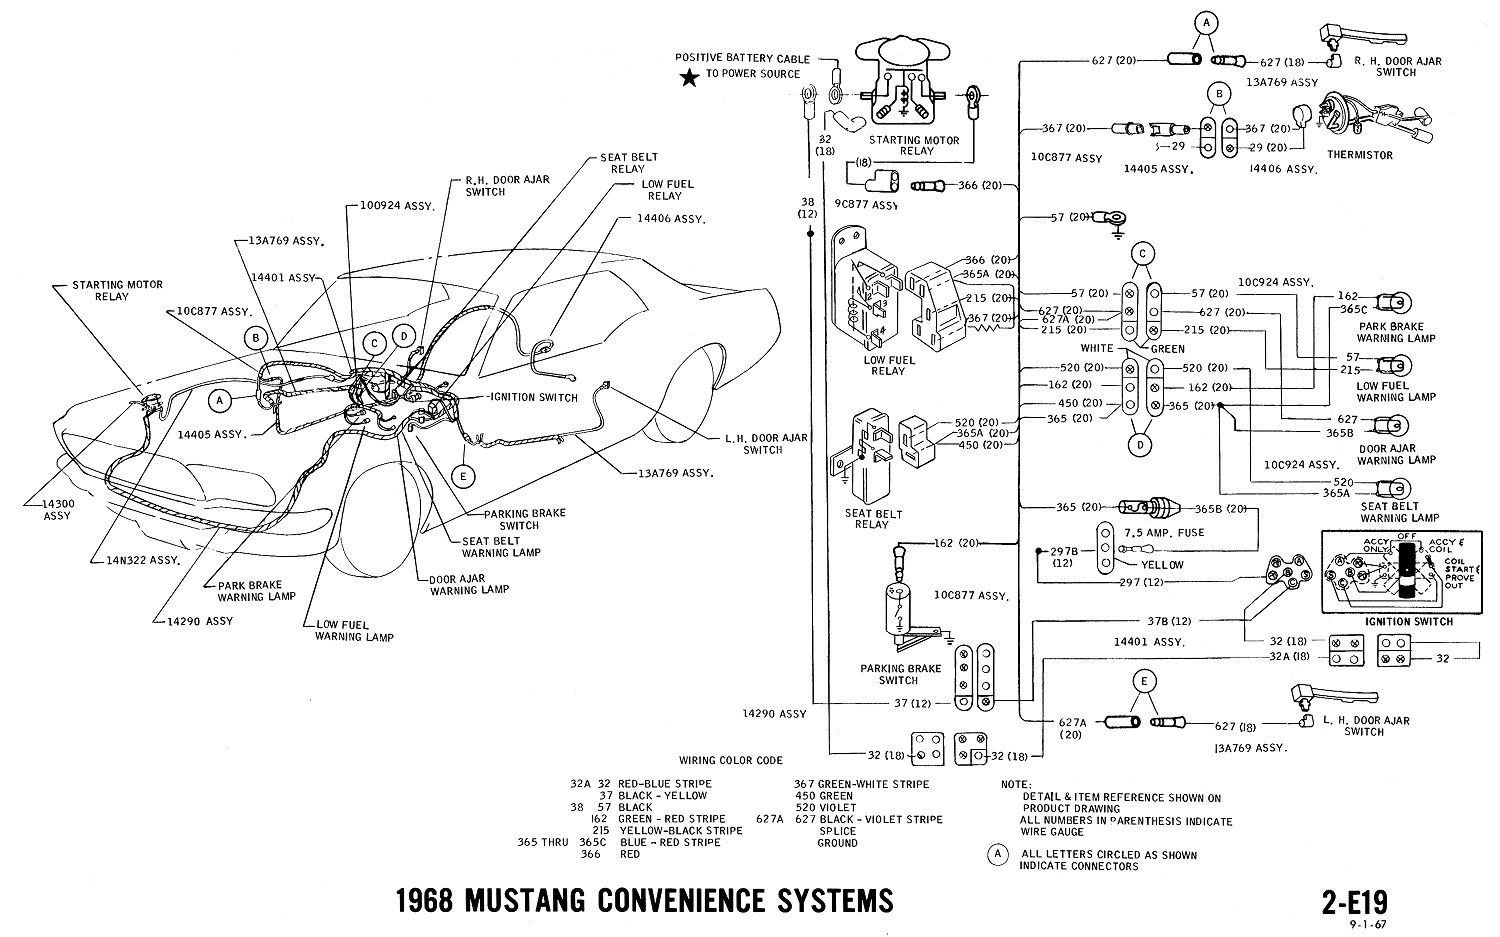 1968 mustang wiring diagram convenience systems 65 mustang dash wiring diagram 1965 ford mustang wiring diagram 1965 ford mustang wiring diagrams at panicattacktreatment.co